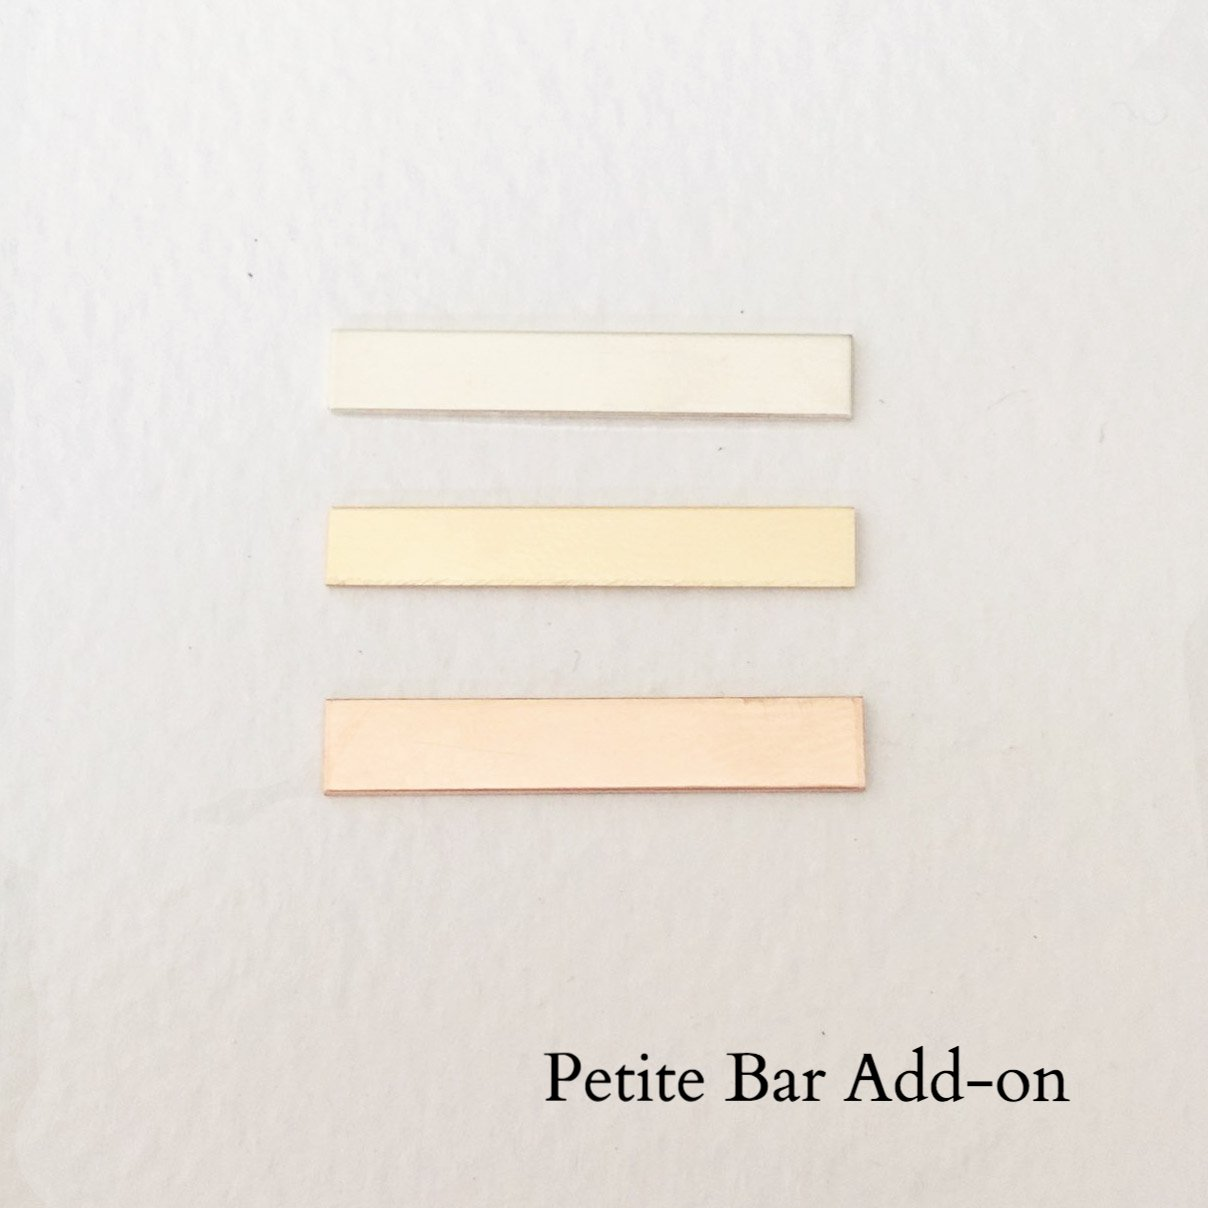 Add a Petite Bar - 30mm x 5mm - Ekalake Handmade Jewellery